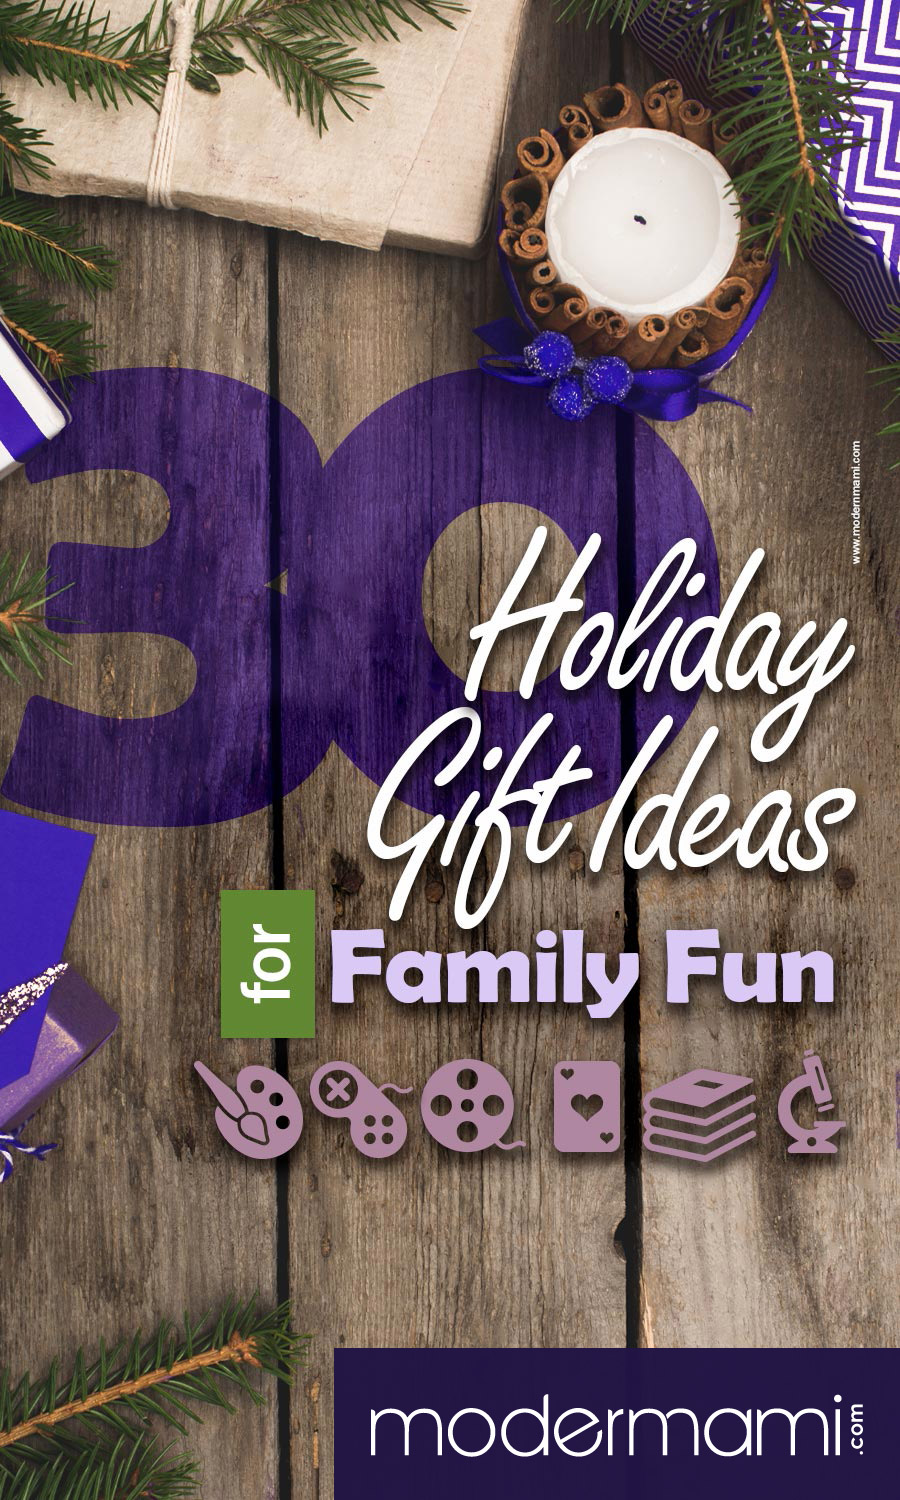 Holiday gift ideas for family fun modernmami 2017 holiday gift guide holiday gift ideas for family fun negle Choice Image